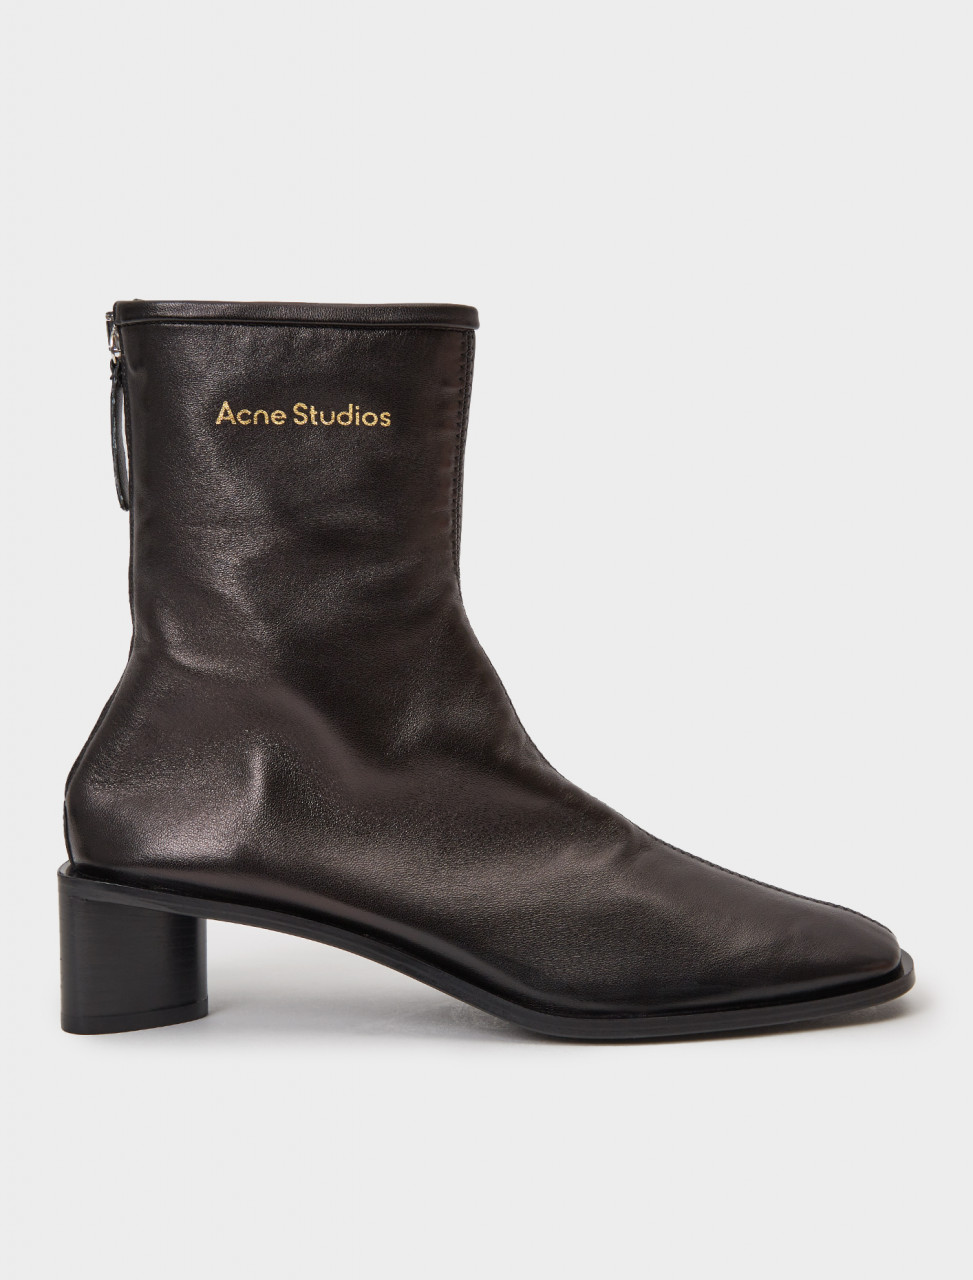 AD0313-AX0 ACNE STUDIOS SQUARE TOE BOOTIES BLACK